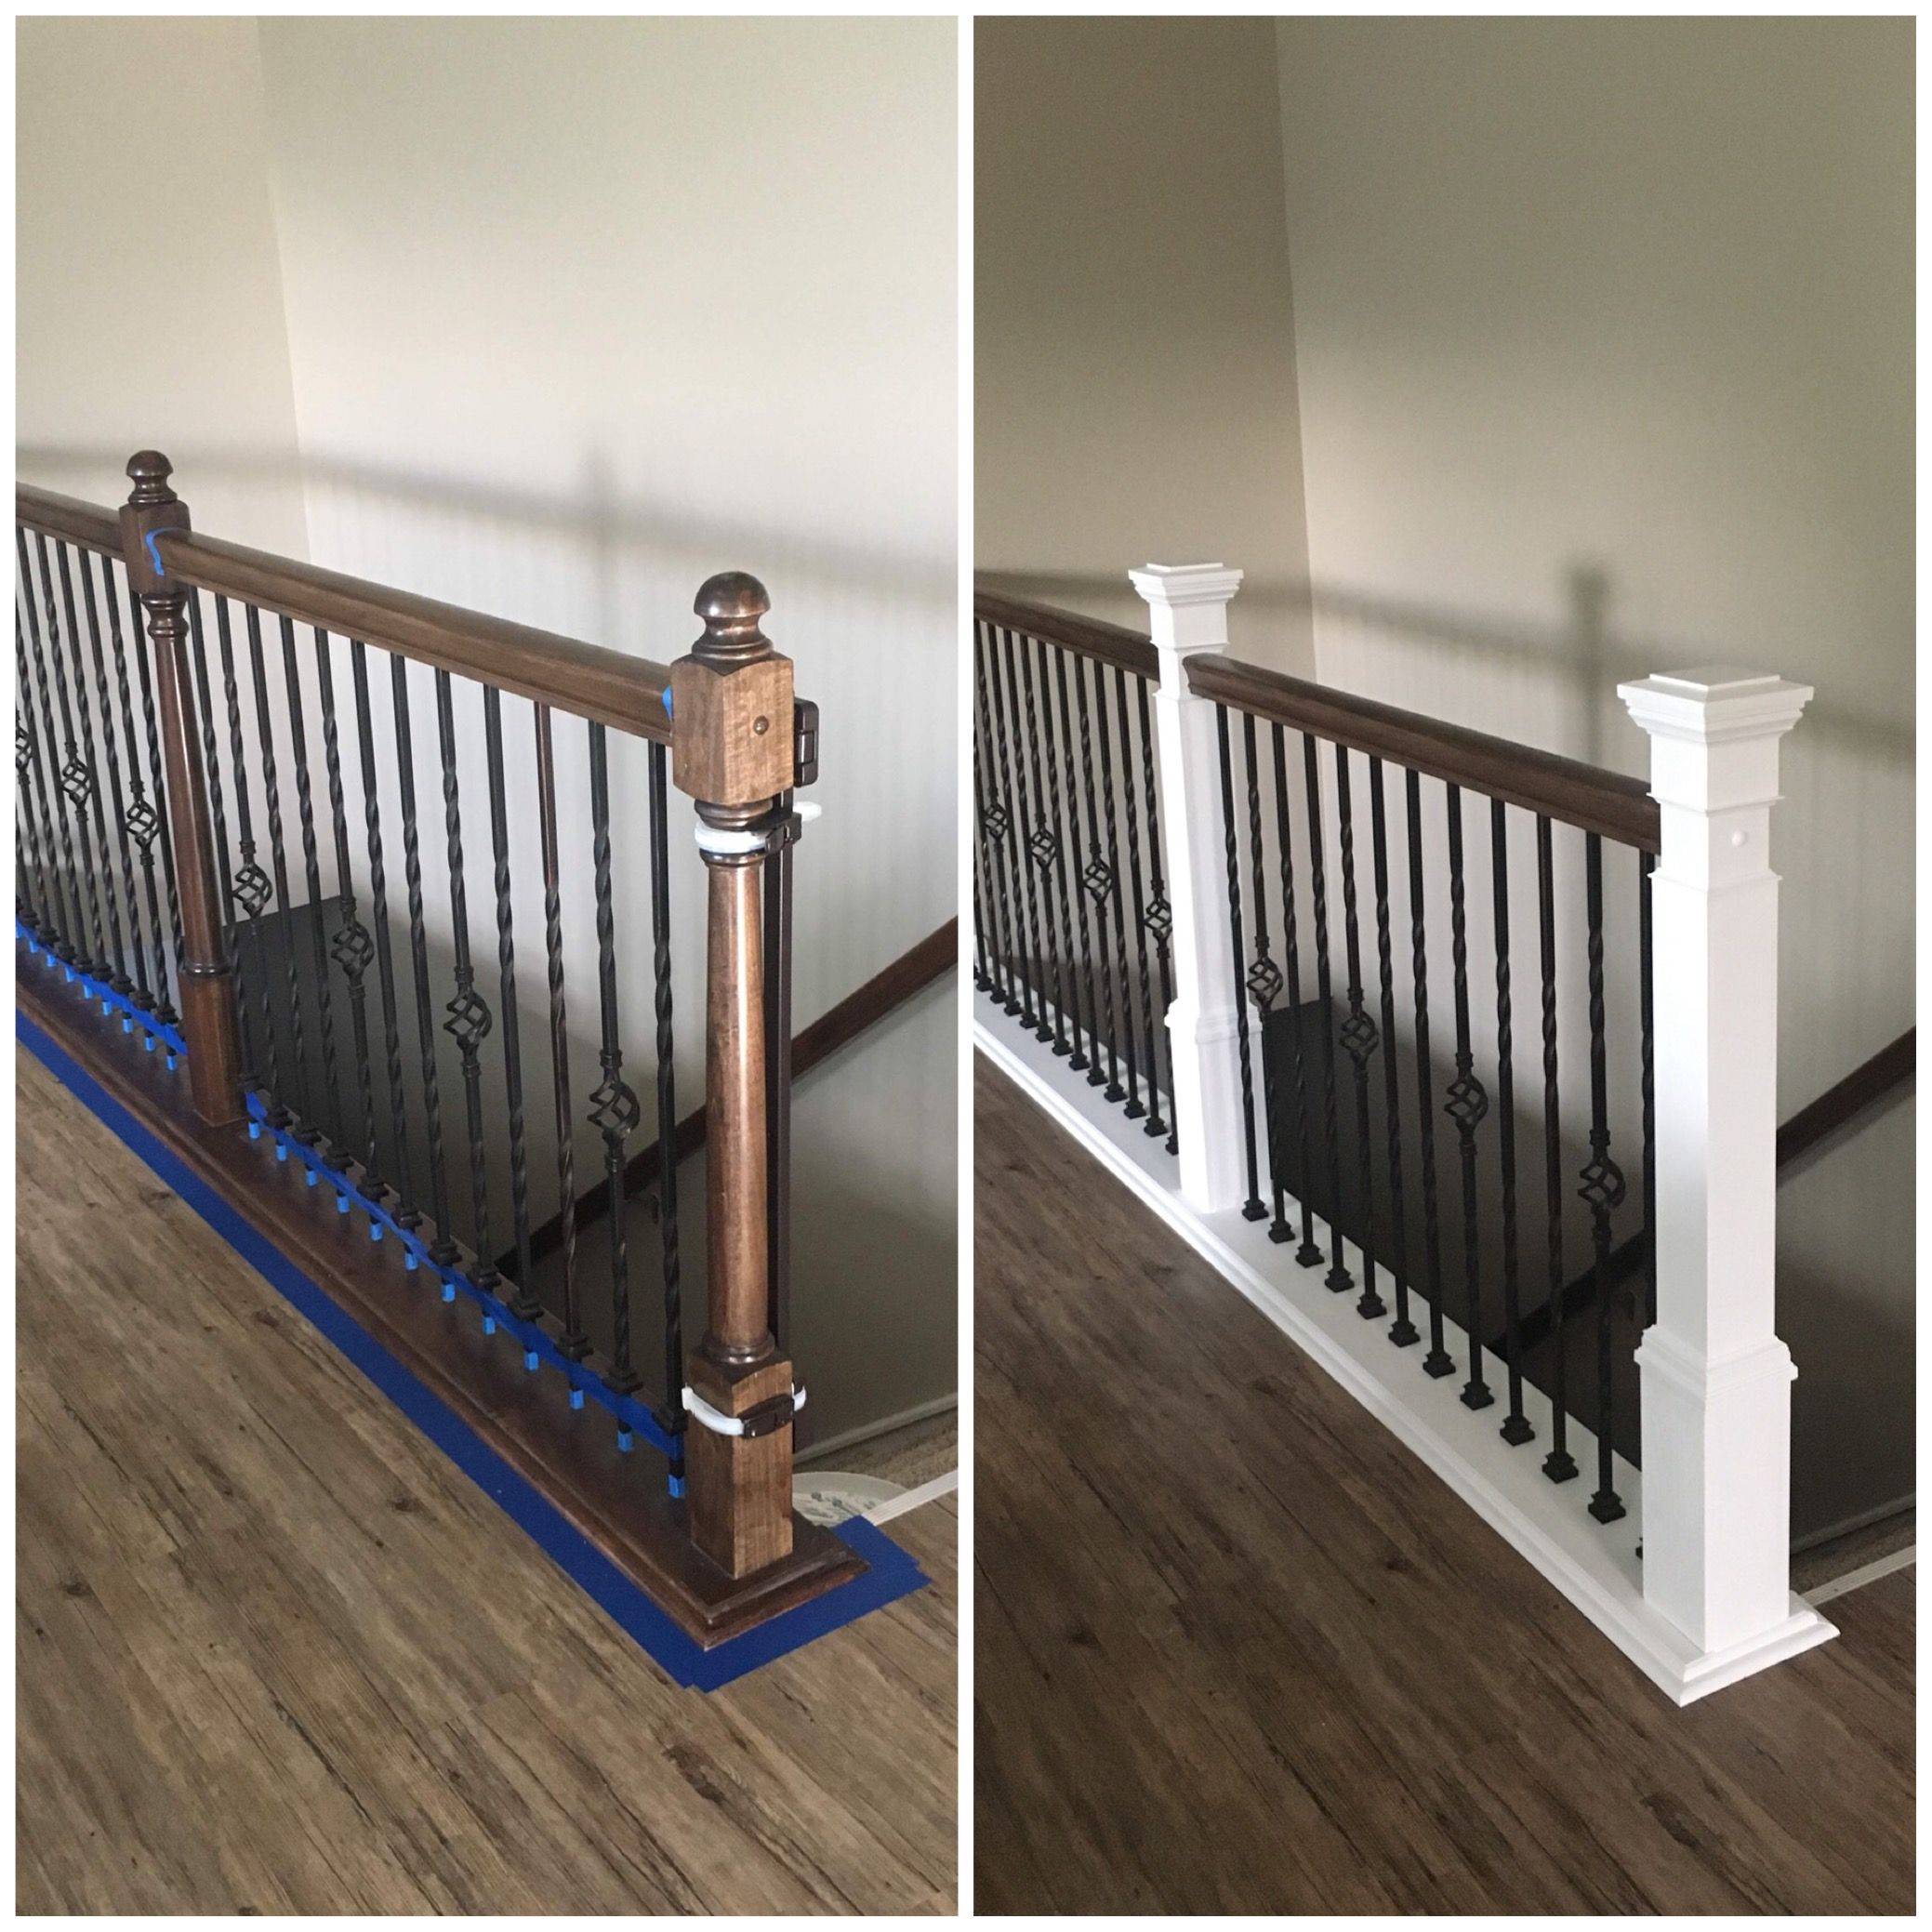 DIY Boring Builder Banister. Painted Base White And Built